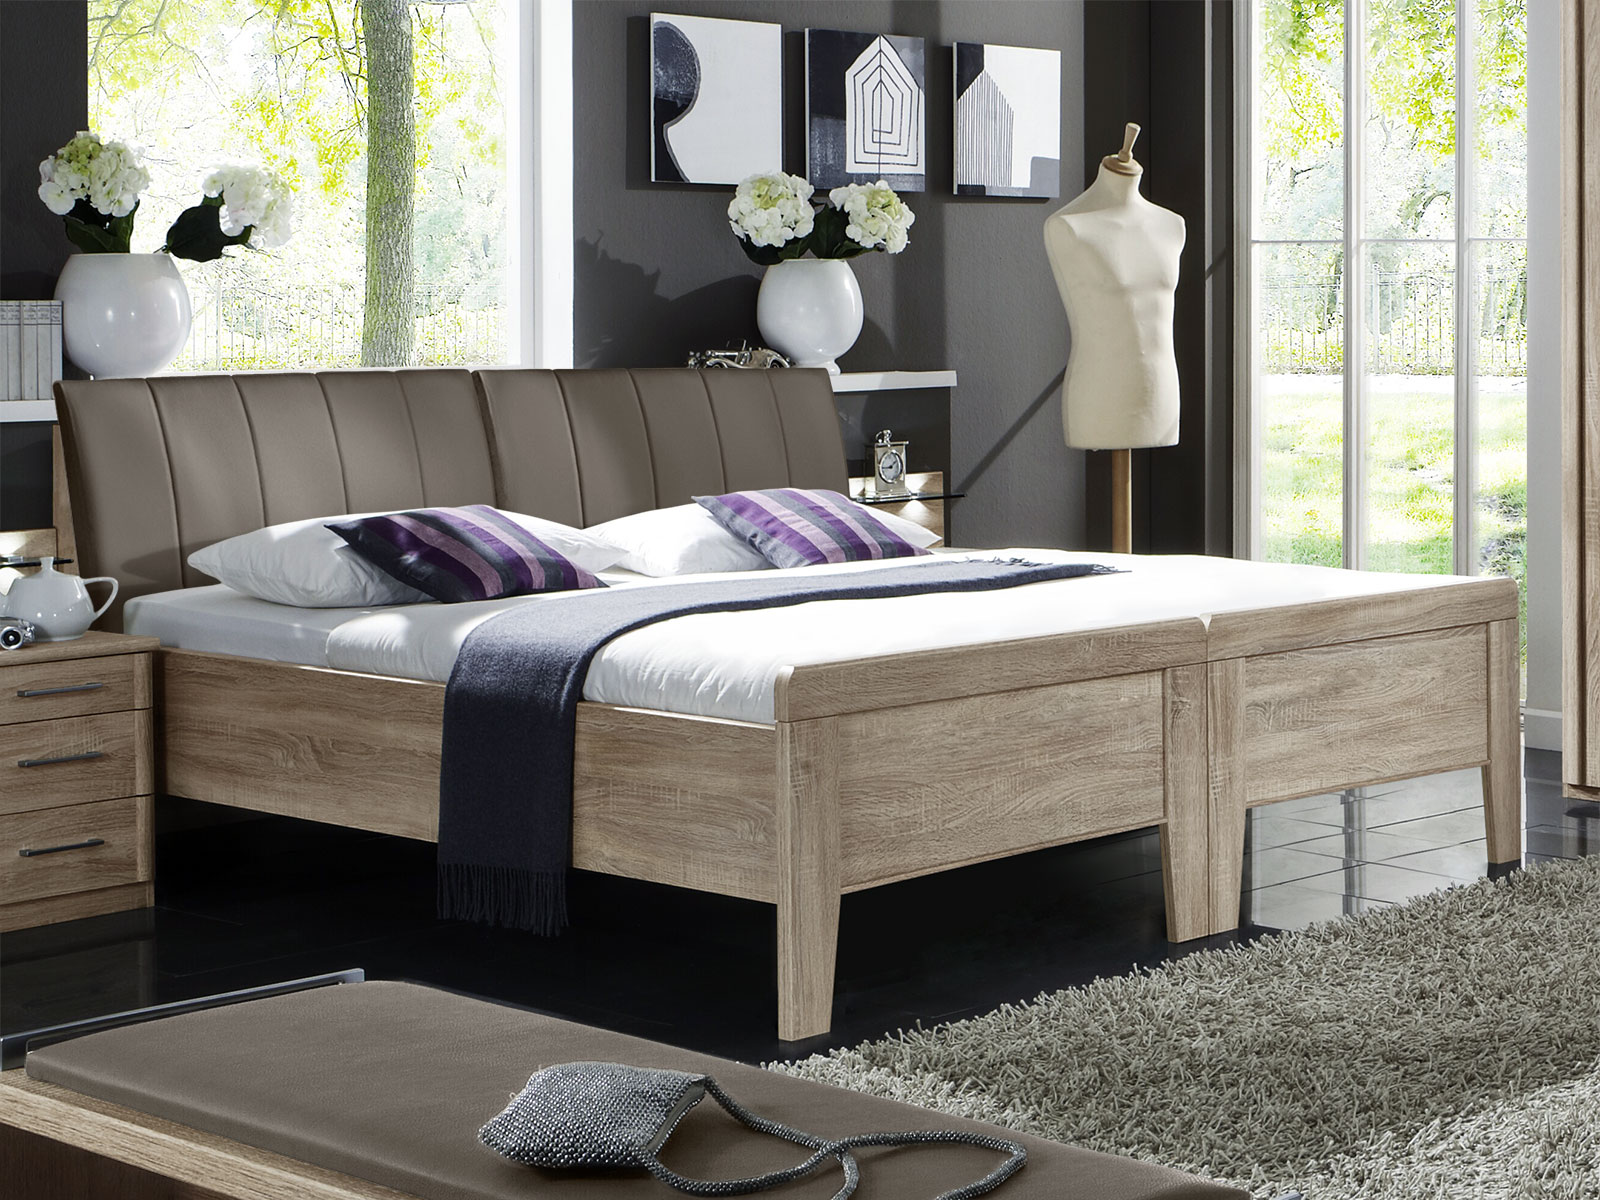 designerbett in eiche dekor mit leder kopfteil runcorn. Black Bedroom Furniture Sets. Home Design Ideas